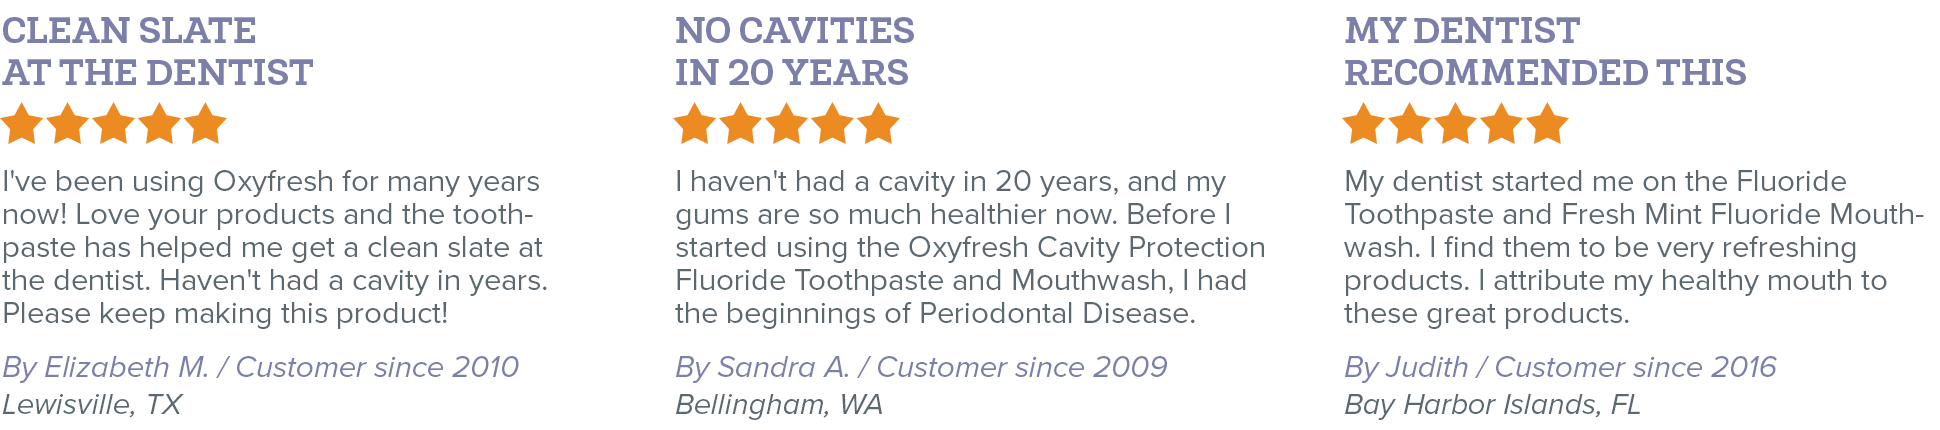 Oxyfresh - Eliminate Bad Breath - Cavity Protection Fluoride Toothpaste Reviews